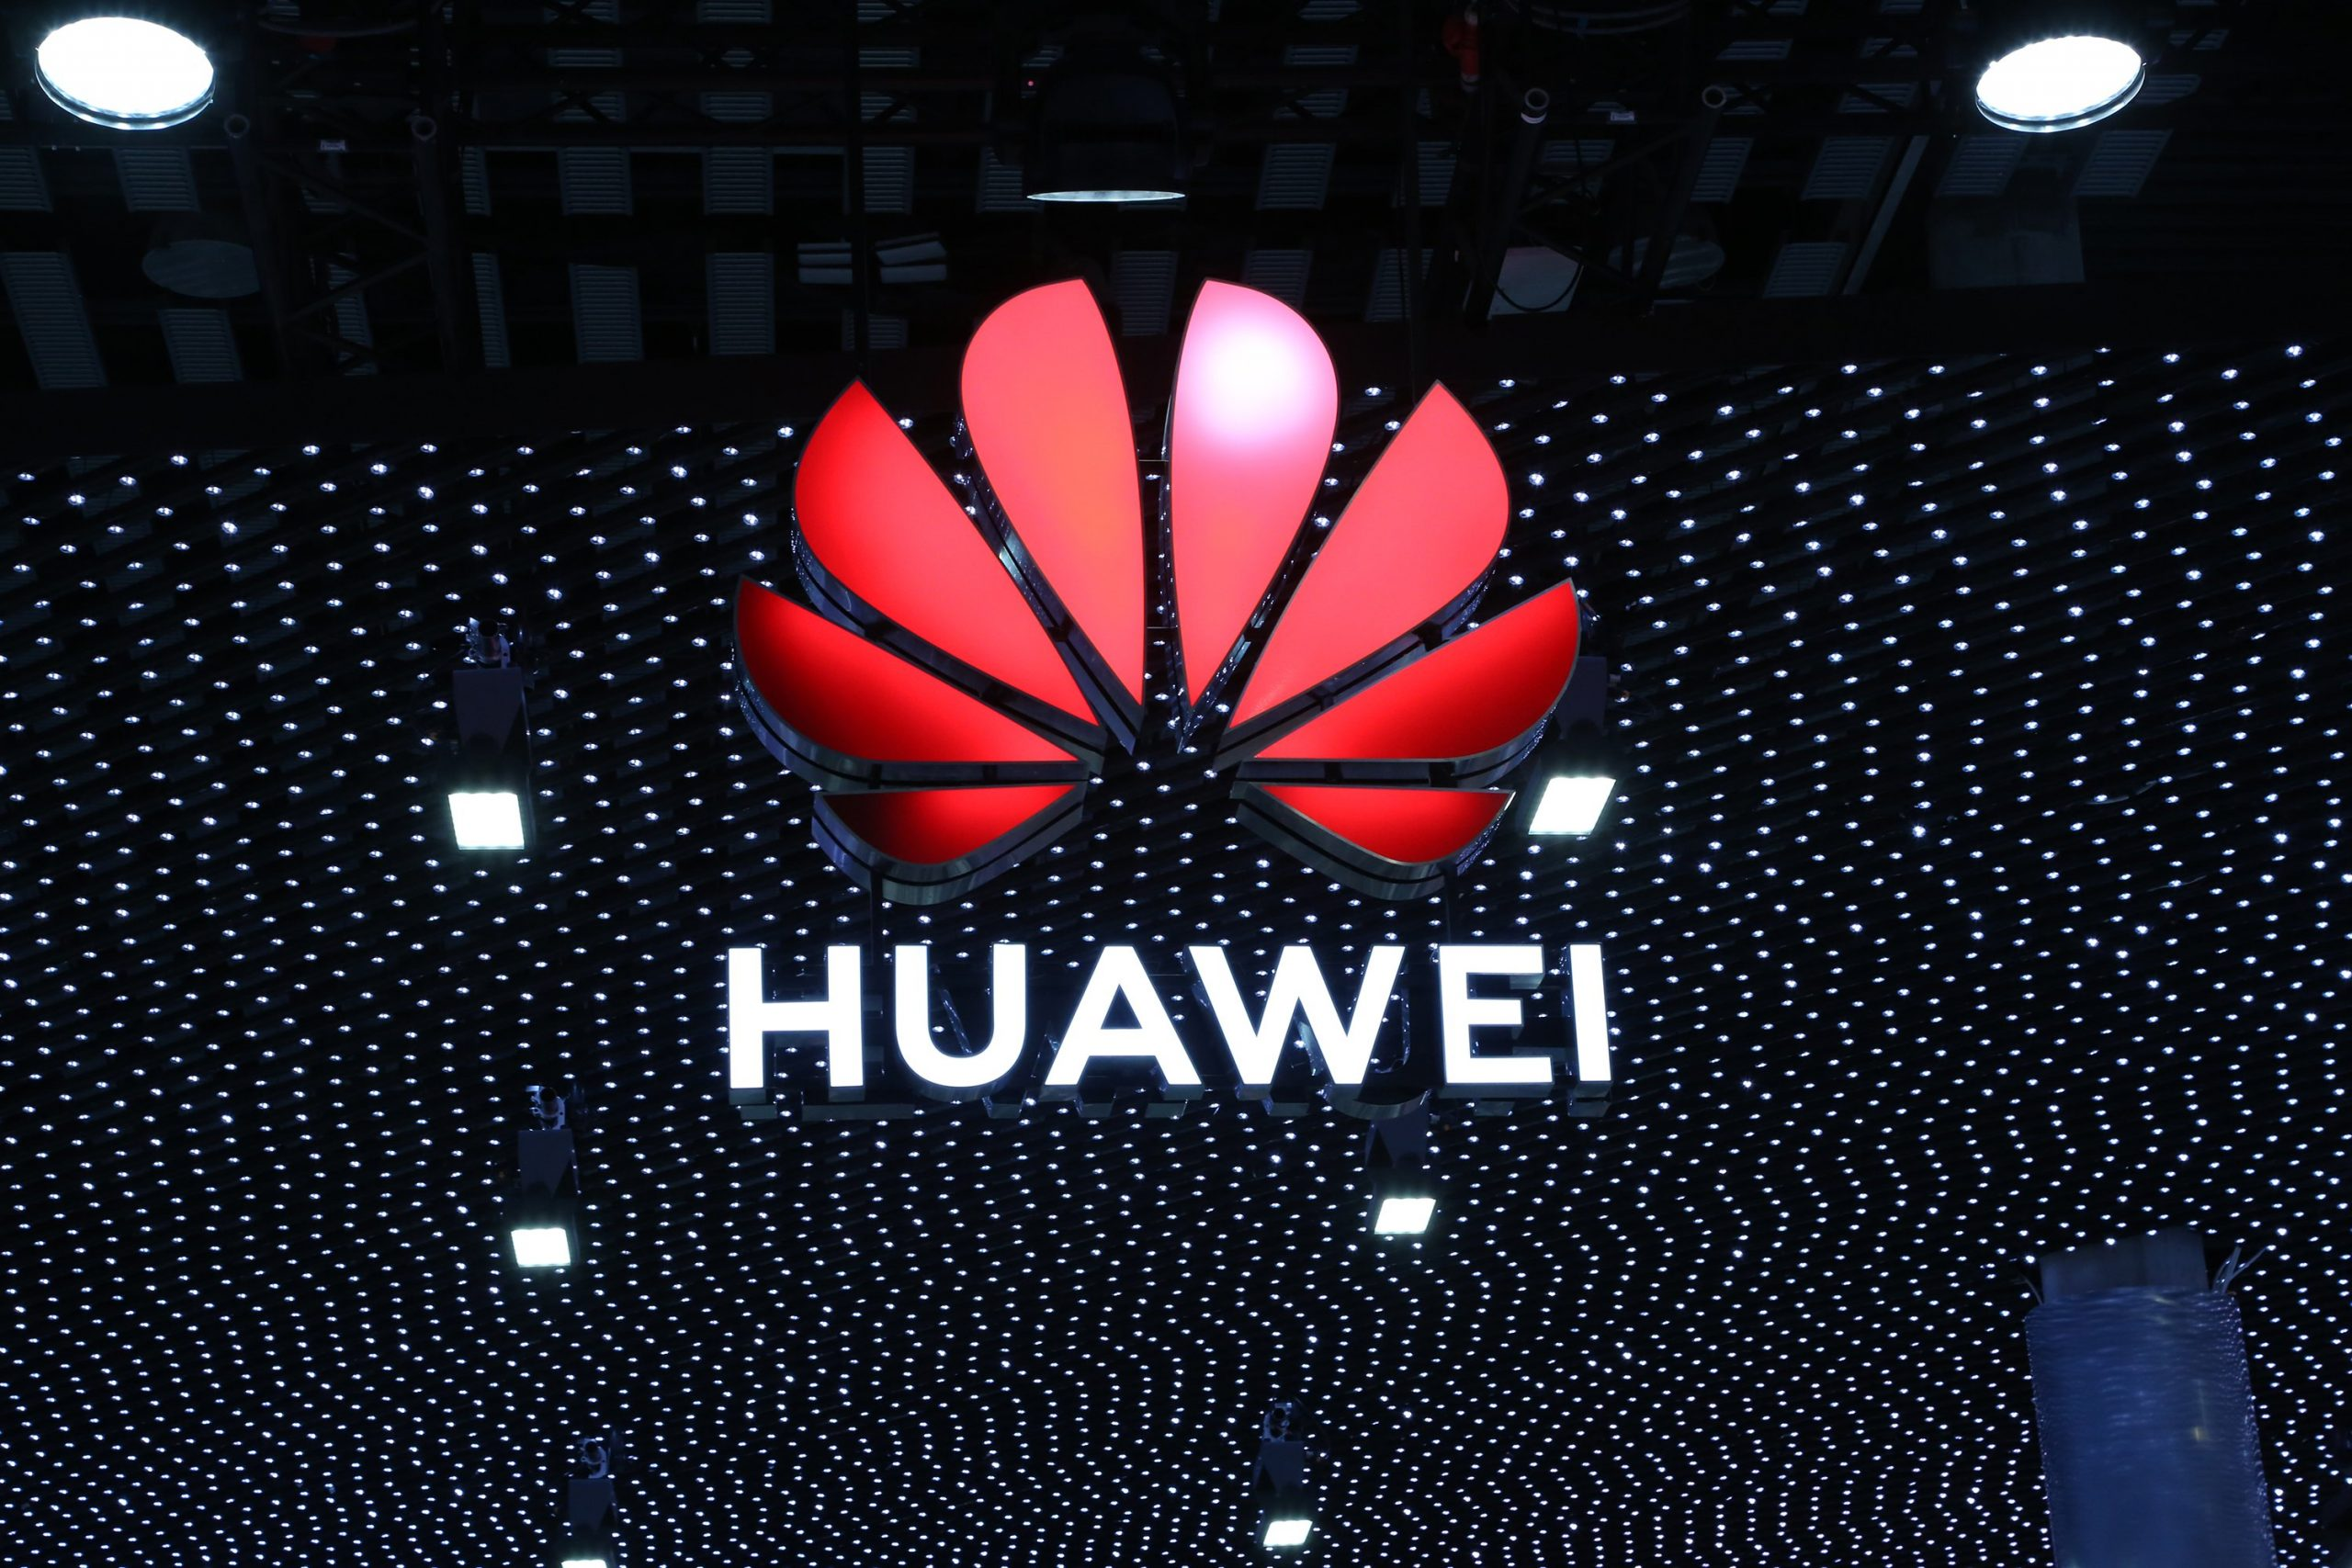 USA revokes licenses of Intel and others to supply chips to Huawei